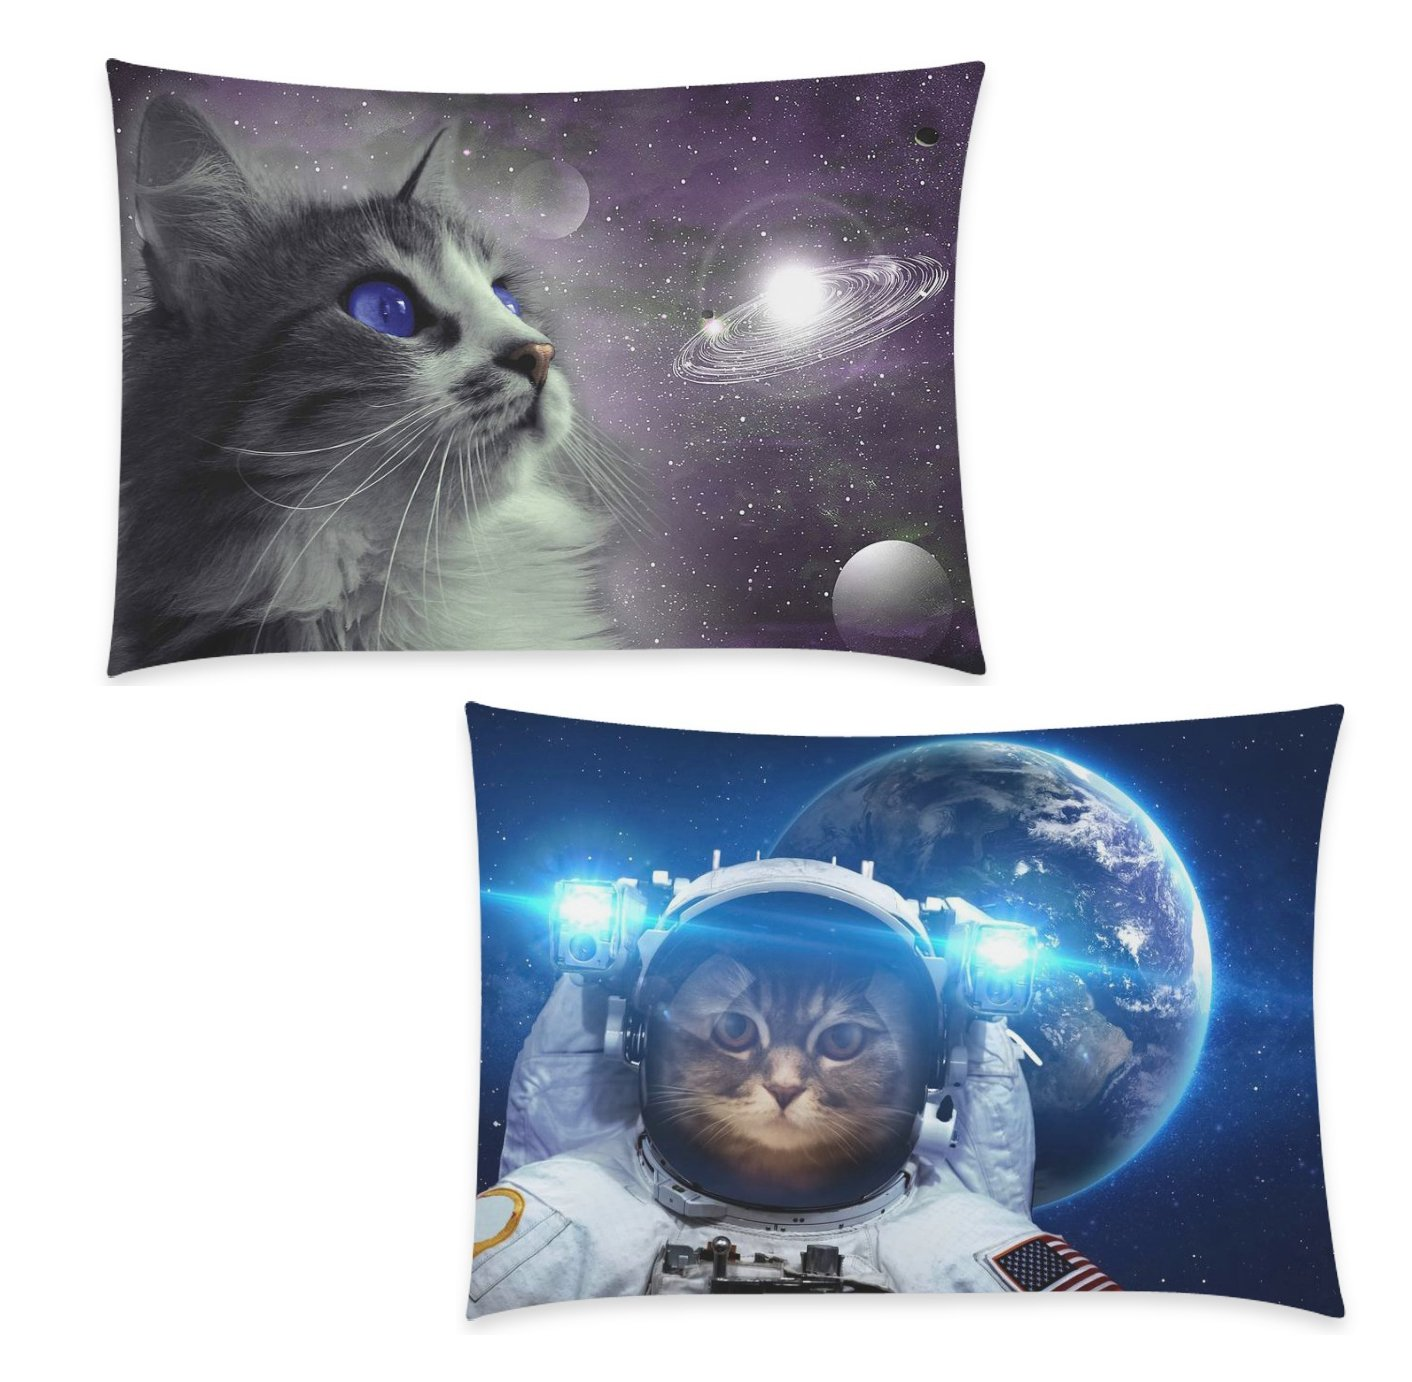 InterestPrint 2 Pack Hipster Space Cat Pillow Case Cover 20x30 One Side, Animal Zippered Pillowcase Set Decoration